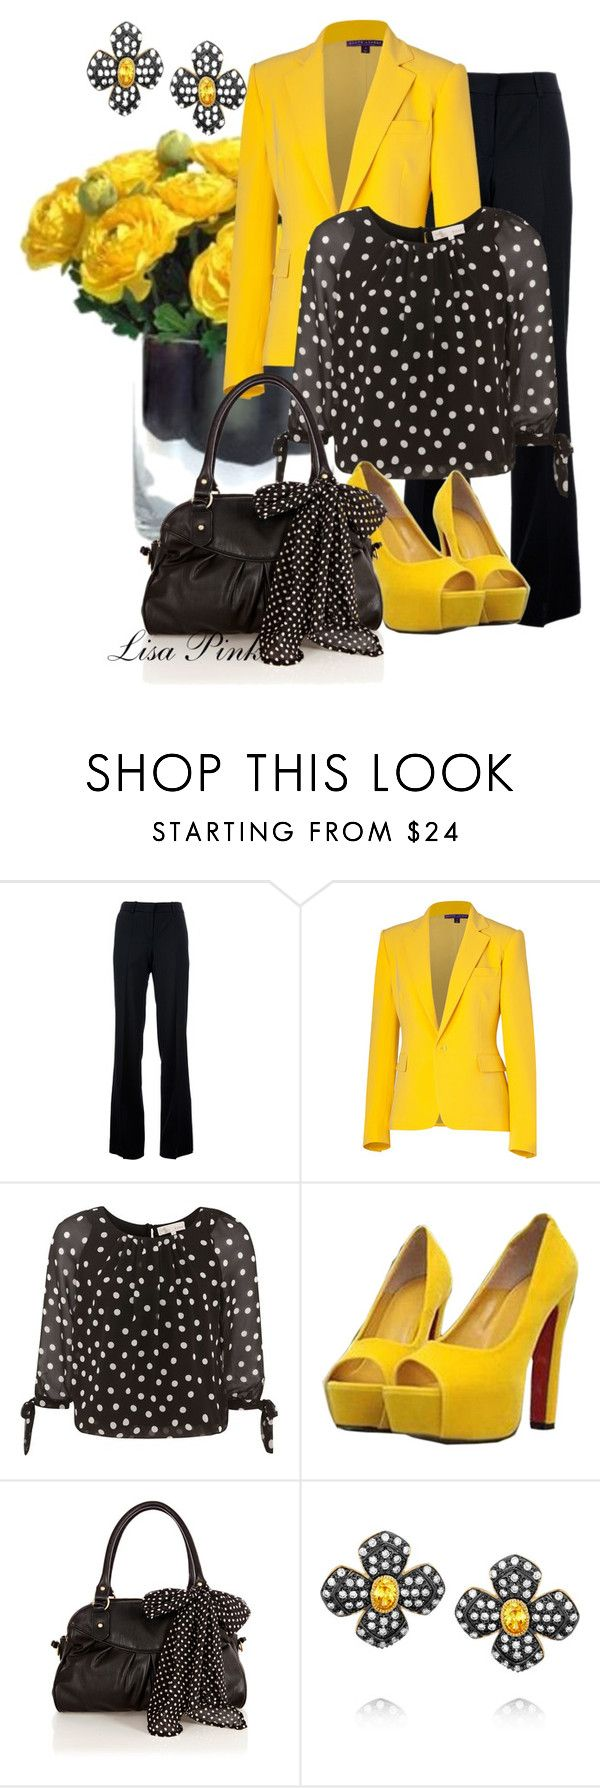 """""""I'M WALKING ON SUNSHINE!!!"""" by lichiep ❤ liked on Polyvore featuring Chloé, Ralph Lauren Collection, Cameo Rose, Oasis, Kenneth Jay Lane, yellow pumps, polka dot handbag, black and white chiffon blouse, ralph lauren yellow blazer and black trousers"""